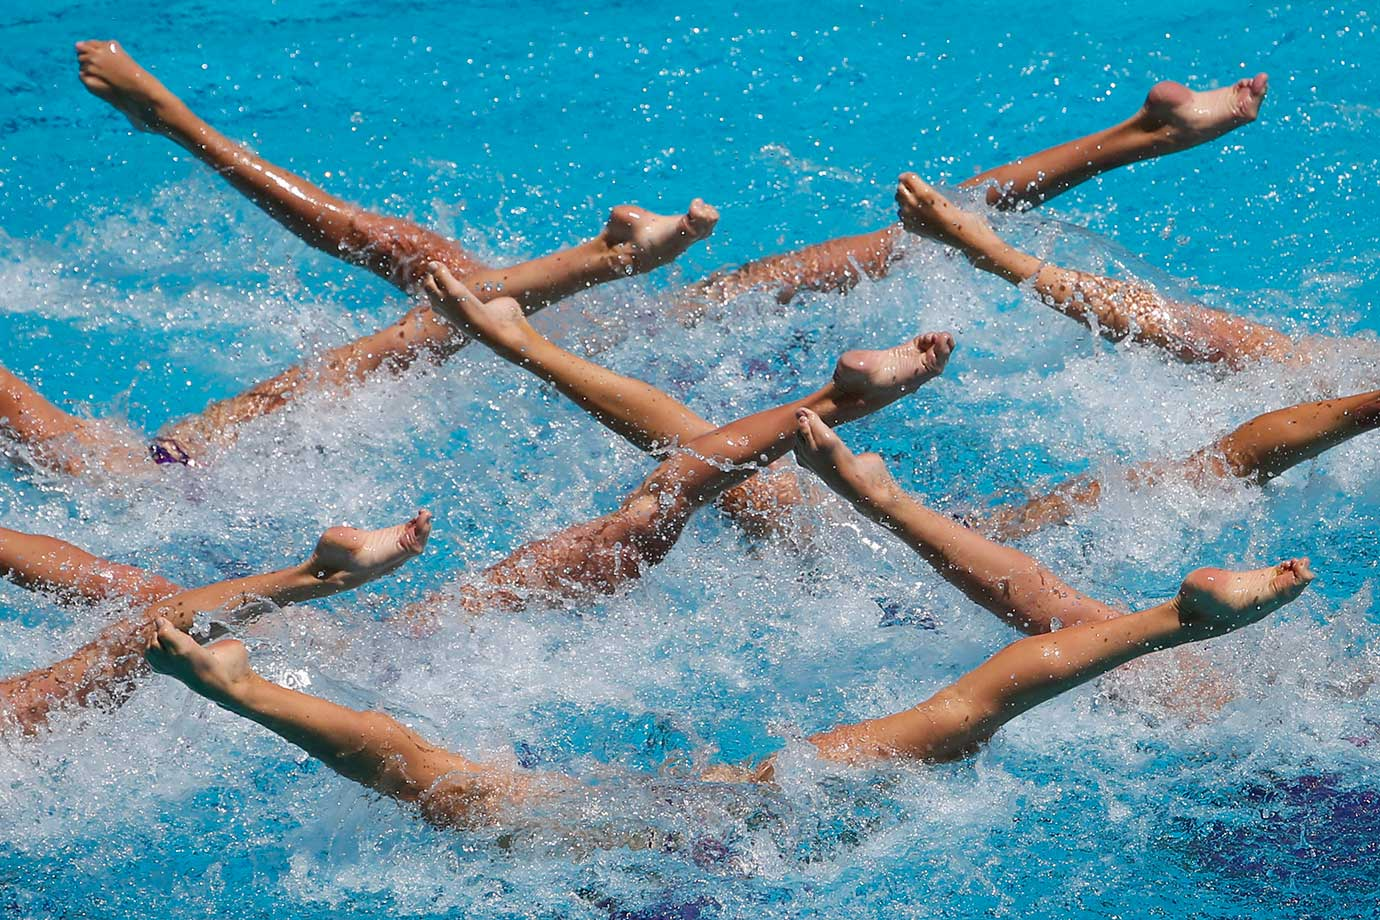 Ukraine's team performs their Free Routine during the Synchronized Swimming Olympic Games Qualification Tournament in Rio de Janeiro, Brazil.